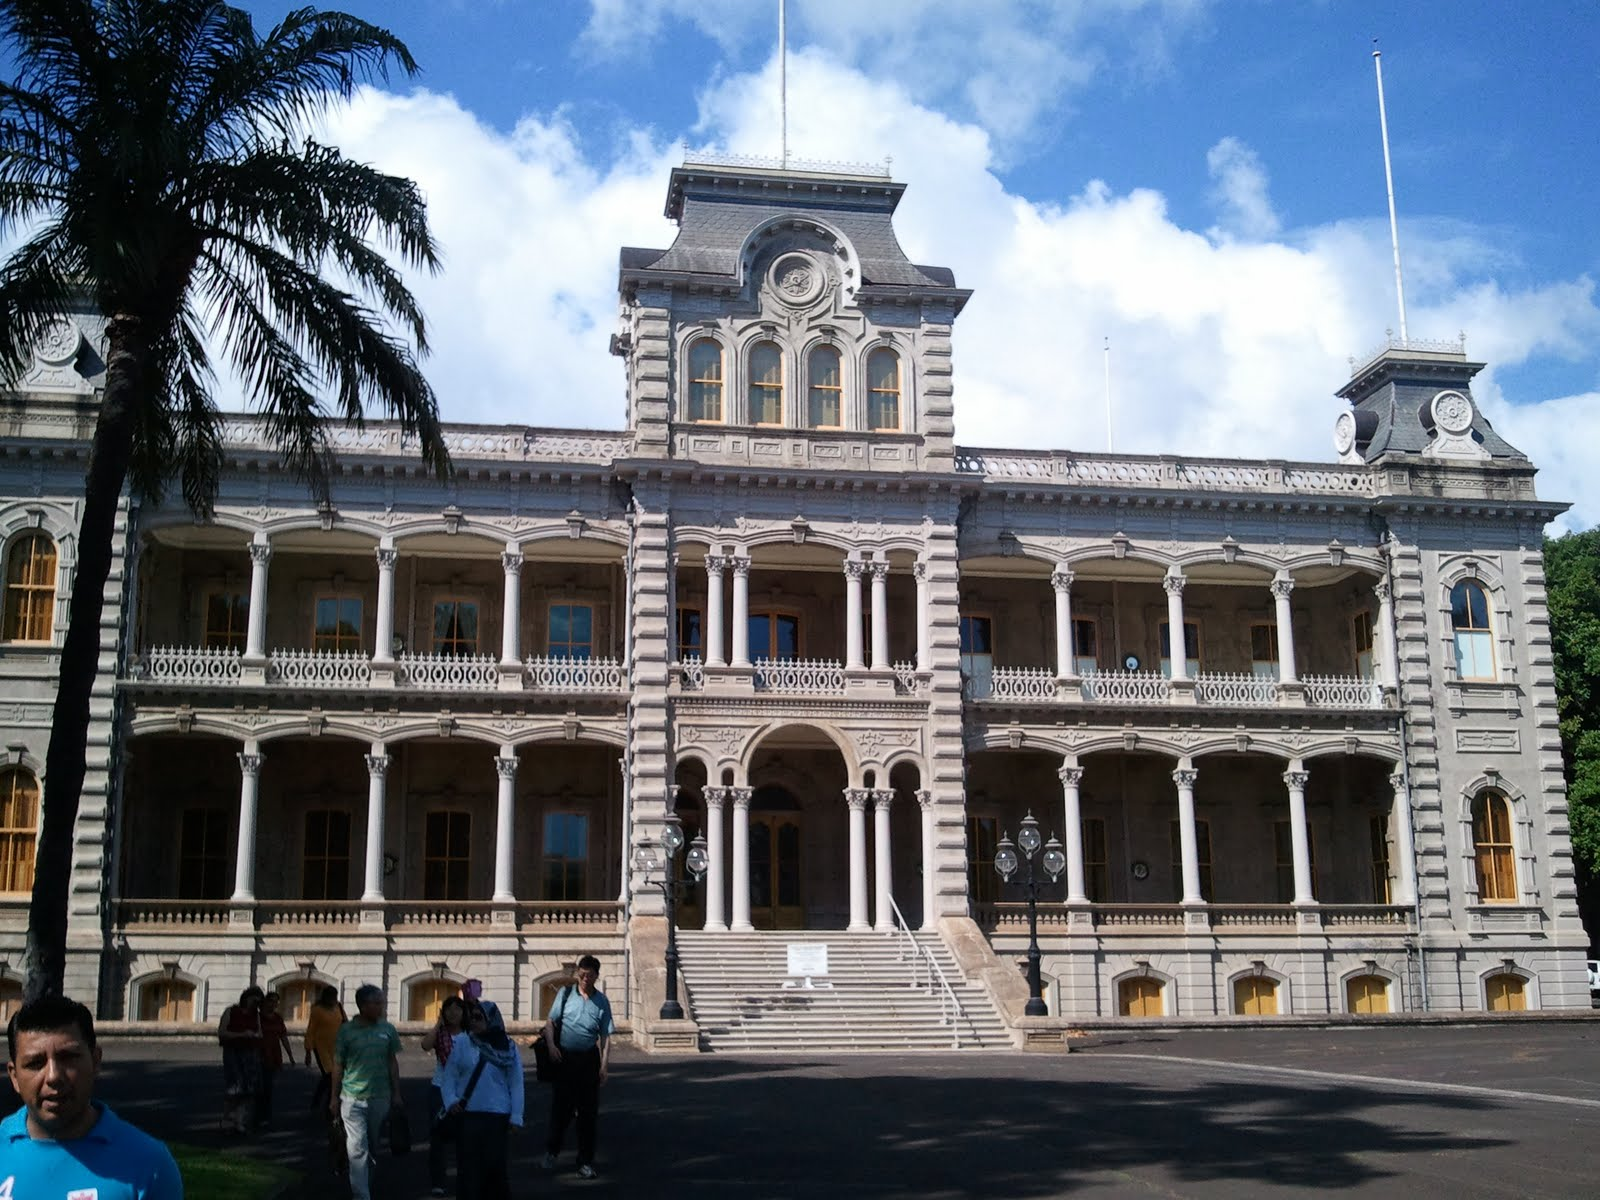 iolani palace Tours iolani palace offers 2 tours: a docent guided tour, and a self-guided audio tour (in addition to the tours a basement gallery only admission is available.